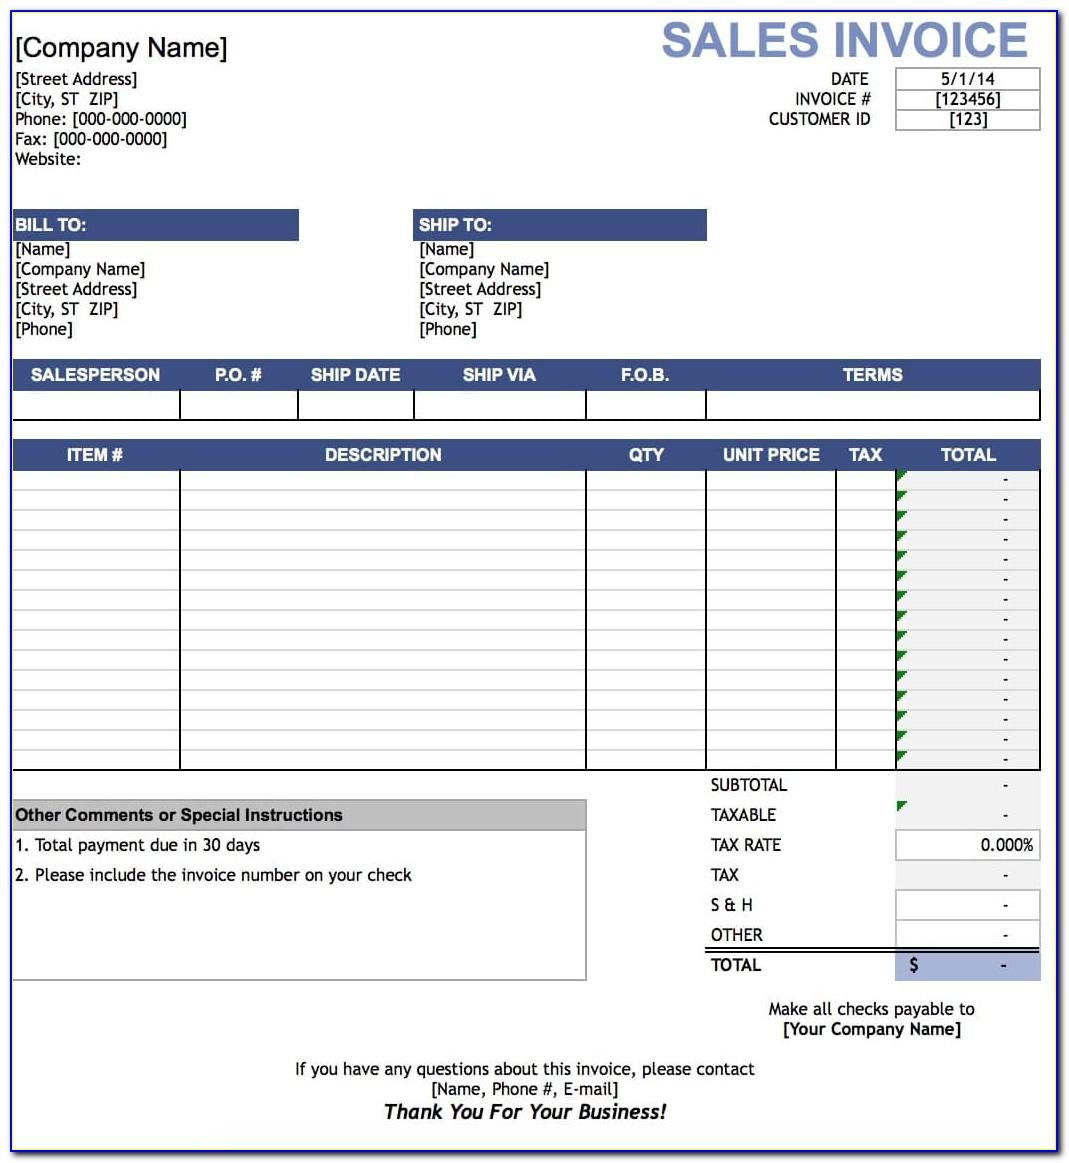 Silent Auction Invoice Template